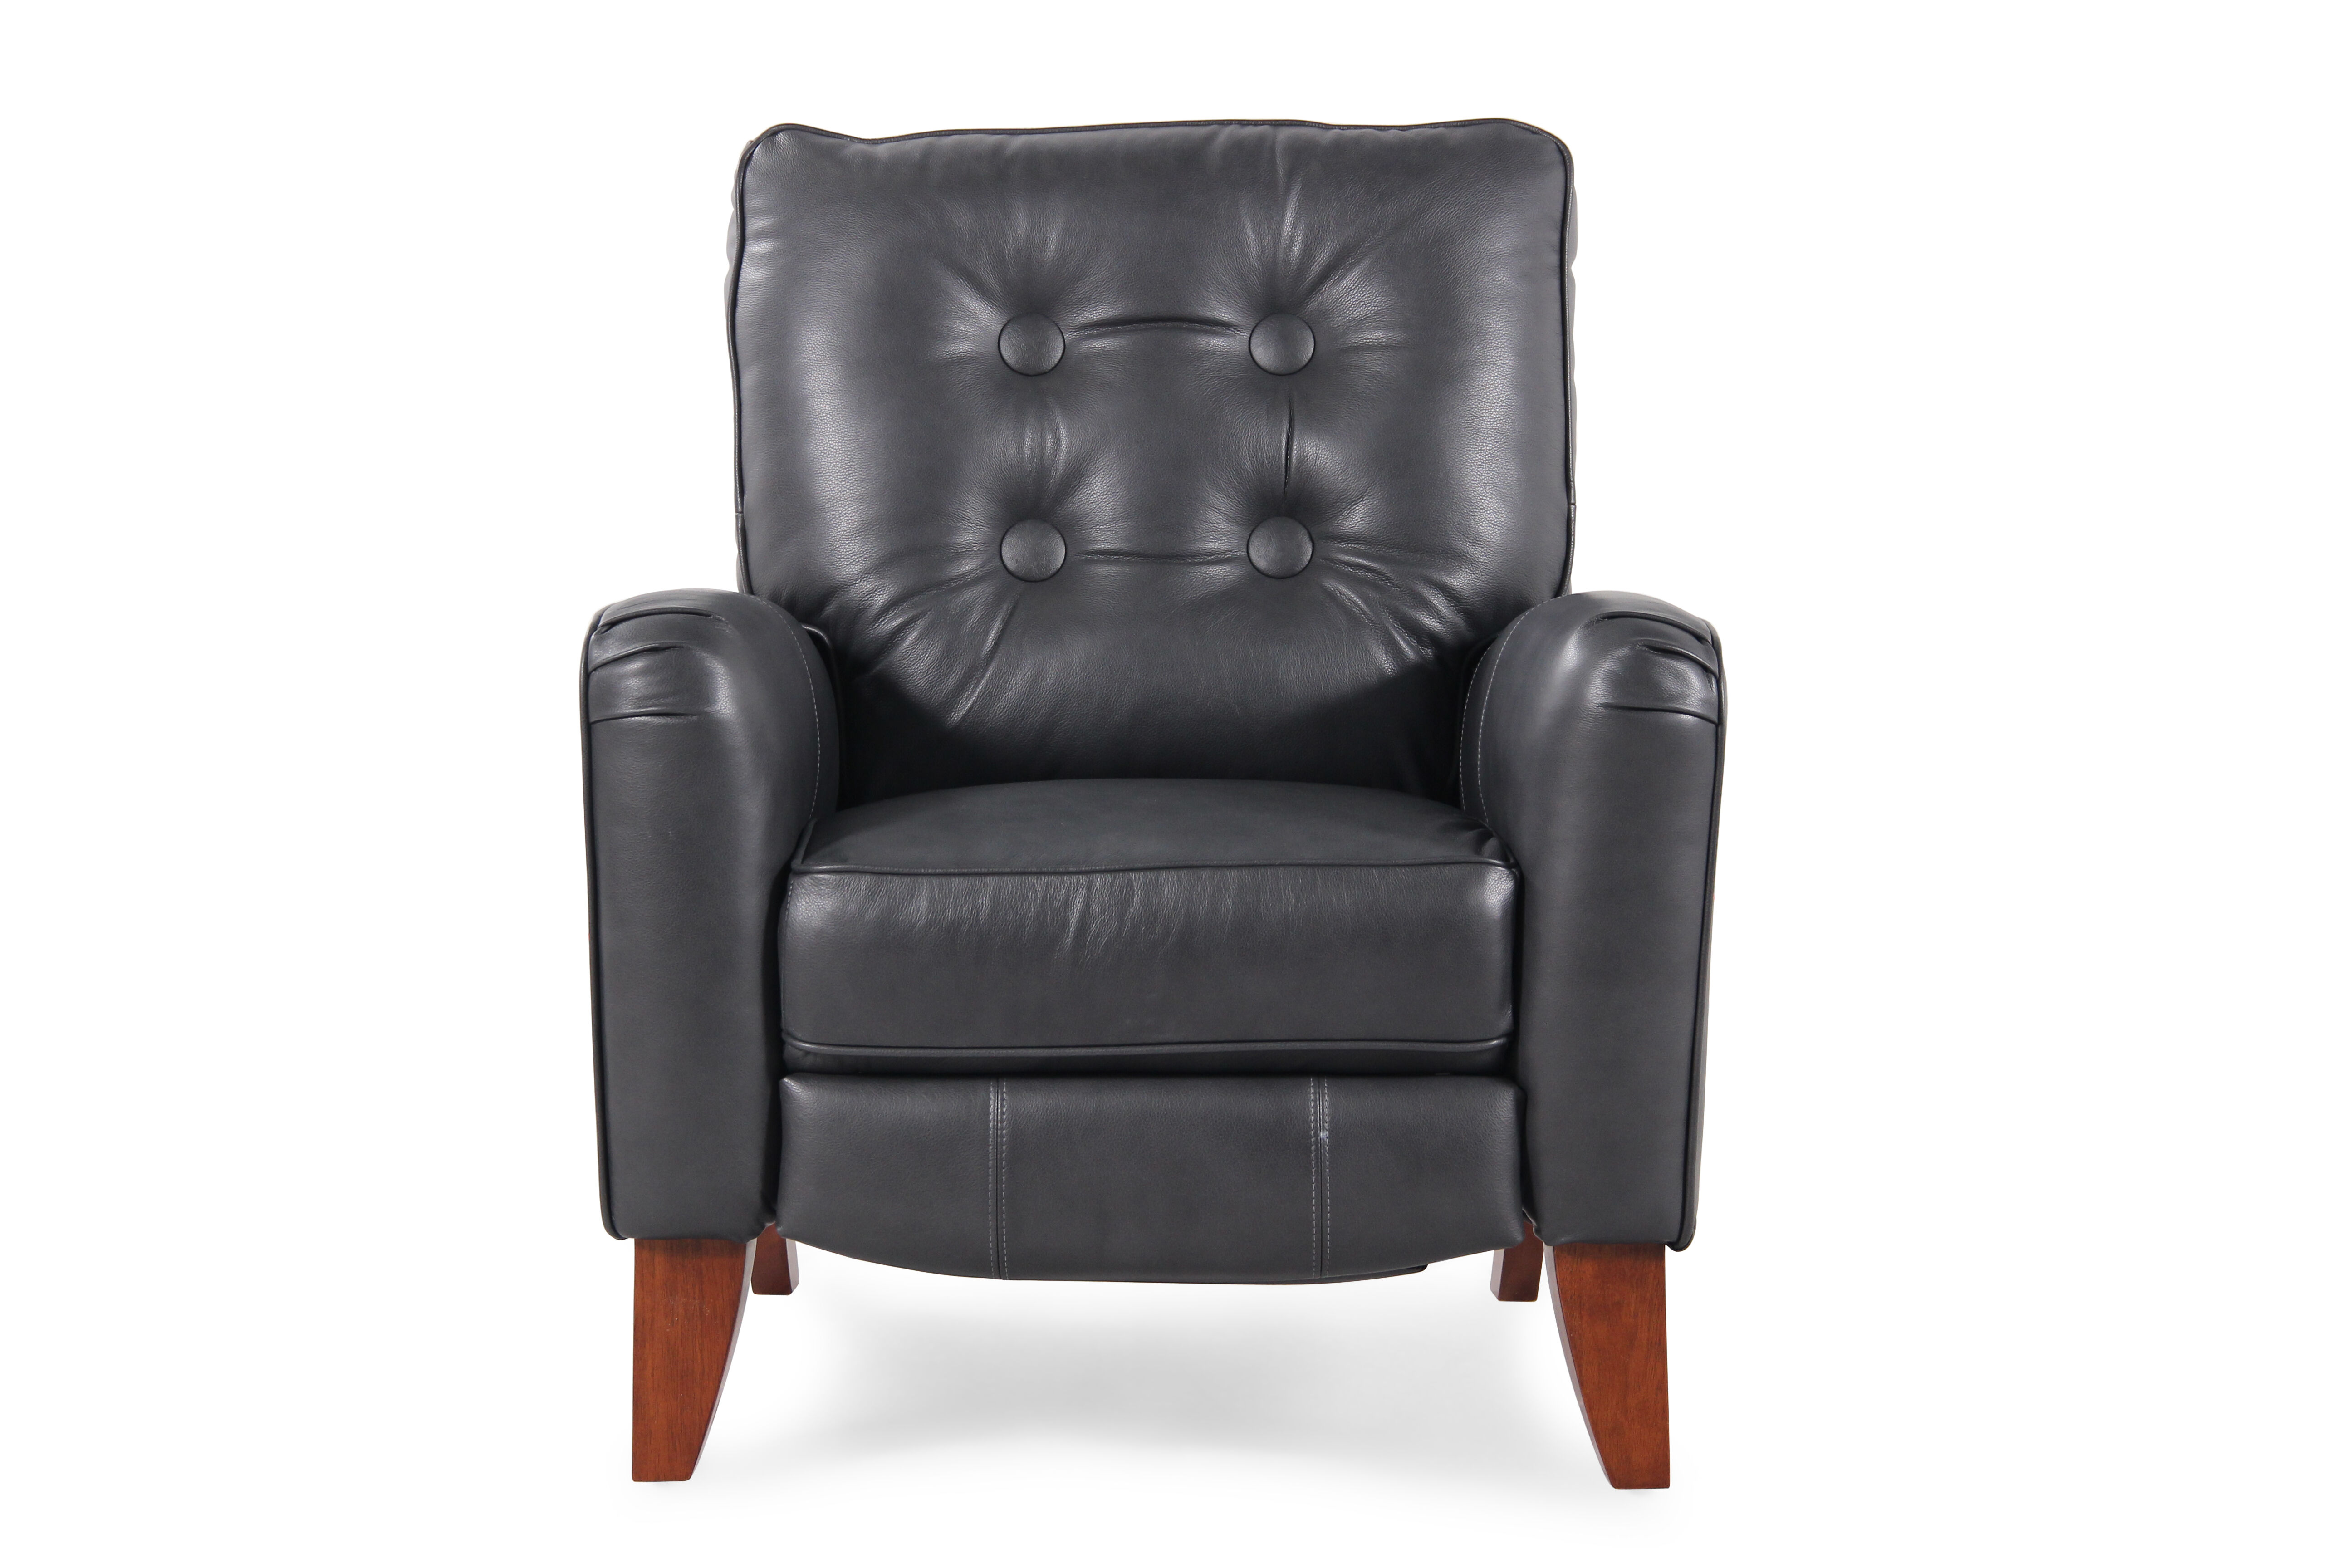 Lane Fritz Steel Pressback Recliner ...  sc 1 st  Mathis Brothers & Lane Furniture | Mathis Brothers Furniture islam-shia.org